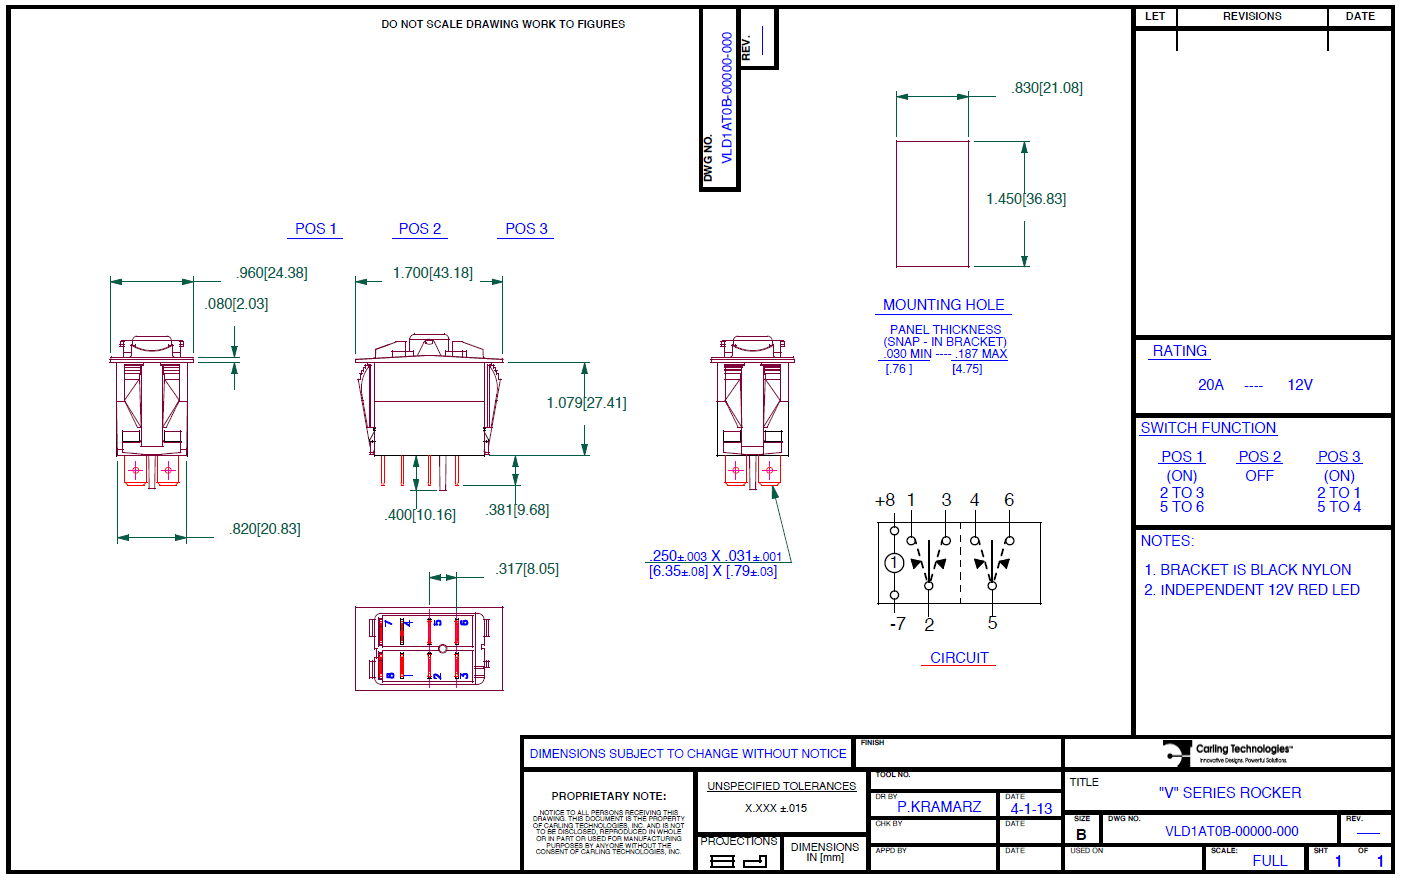 winch controller wiring diagram 2004 toyota corolla car stereo utv inc switch help polaris rzr forum